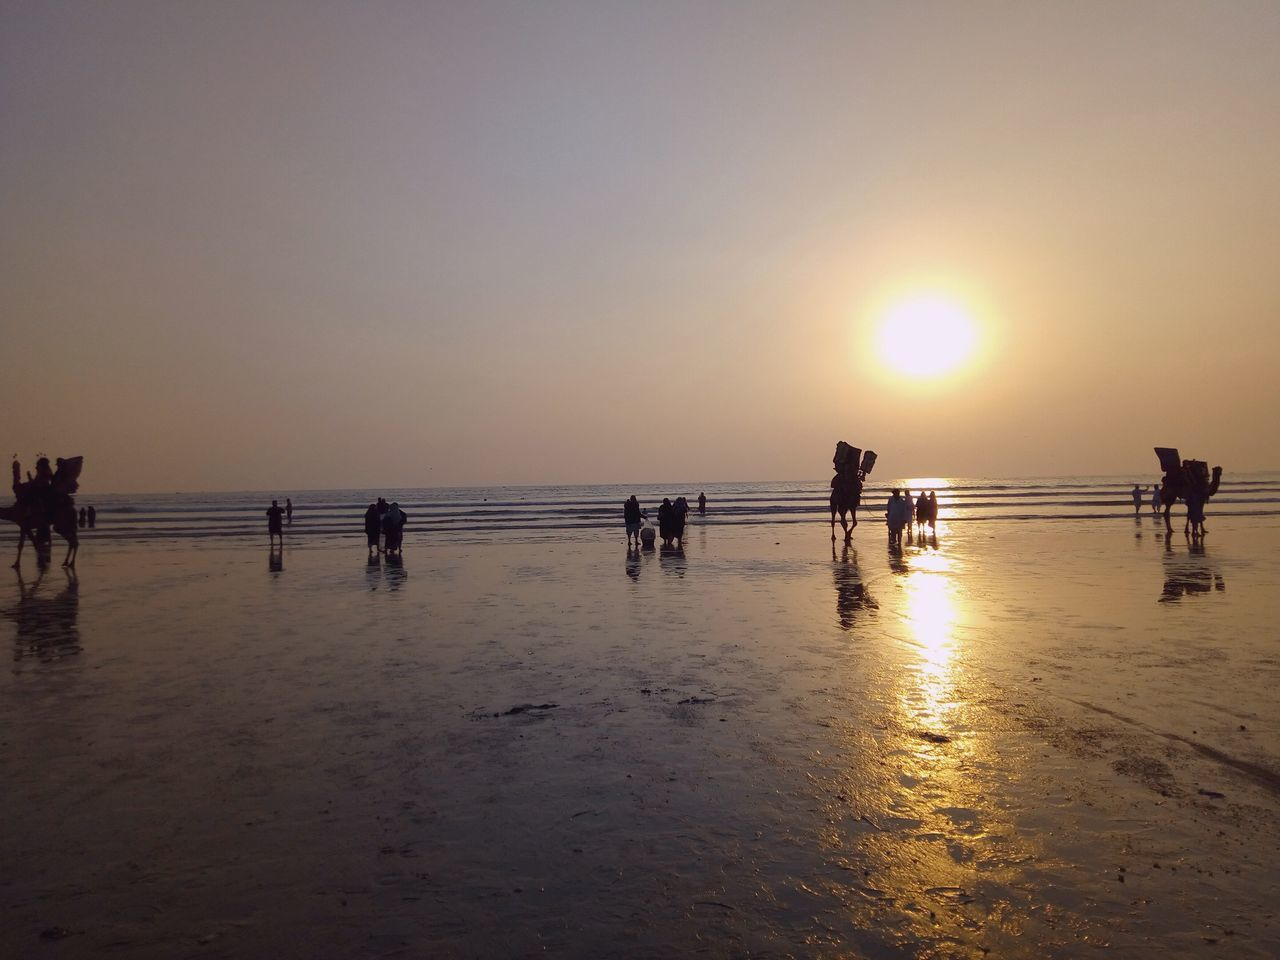 Sea Beach Sunset Silhouette Beauty In Nature Vacations Karachi Finding New Frontiers